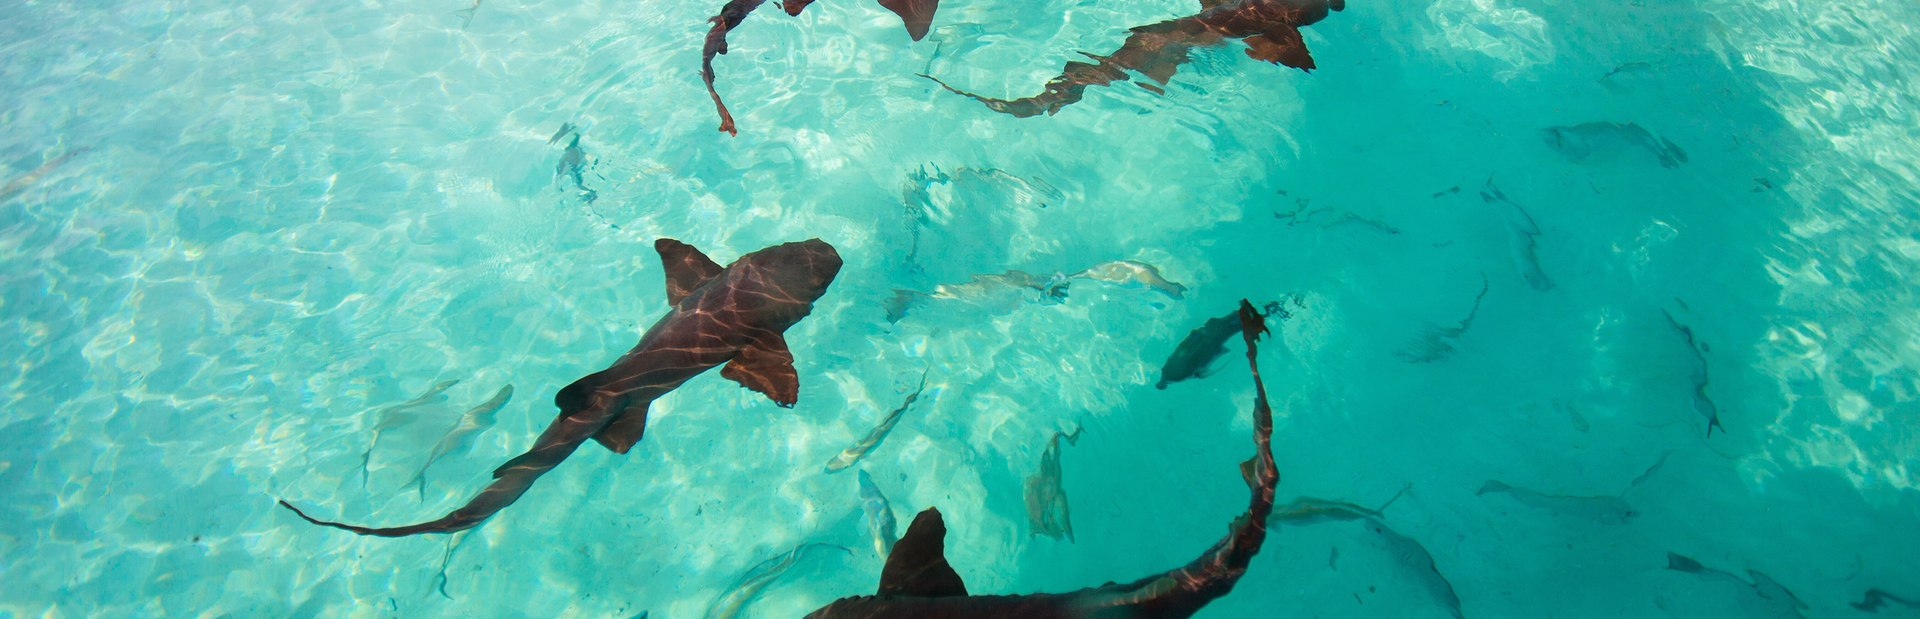 Things to see & do in the Bahamas